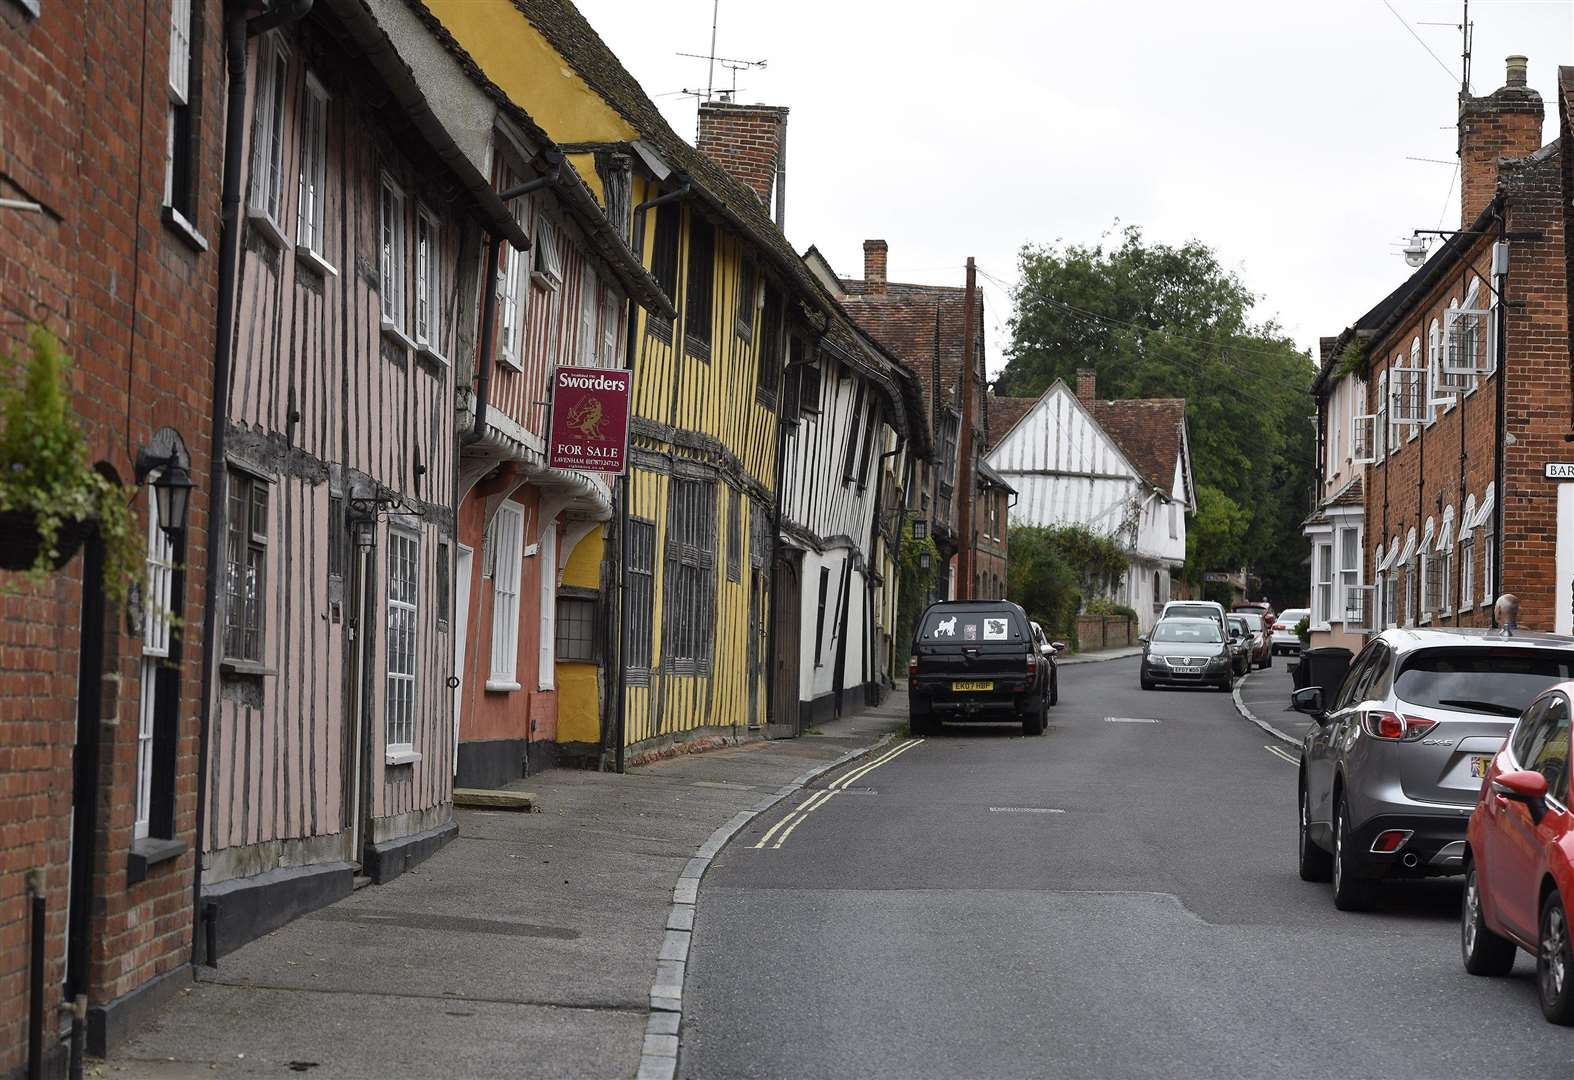 Frustration as work to install HGV limit on Lavenham street misses deadline